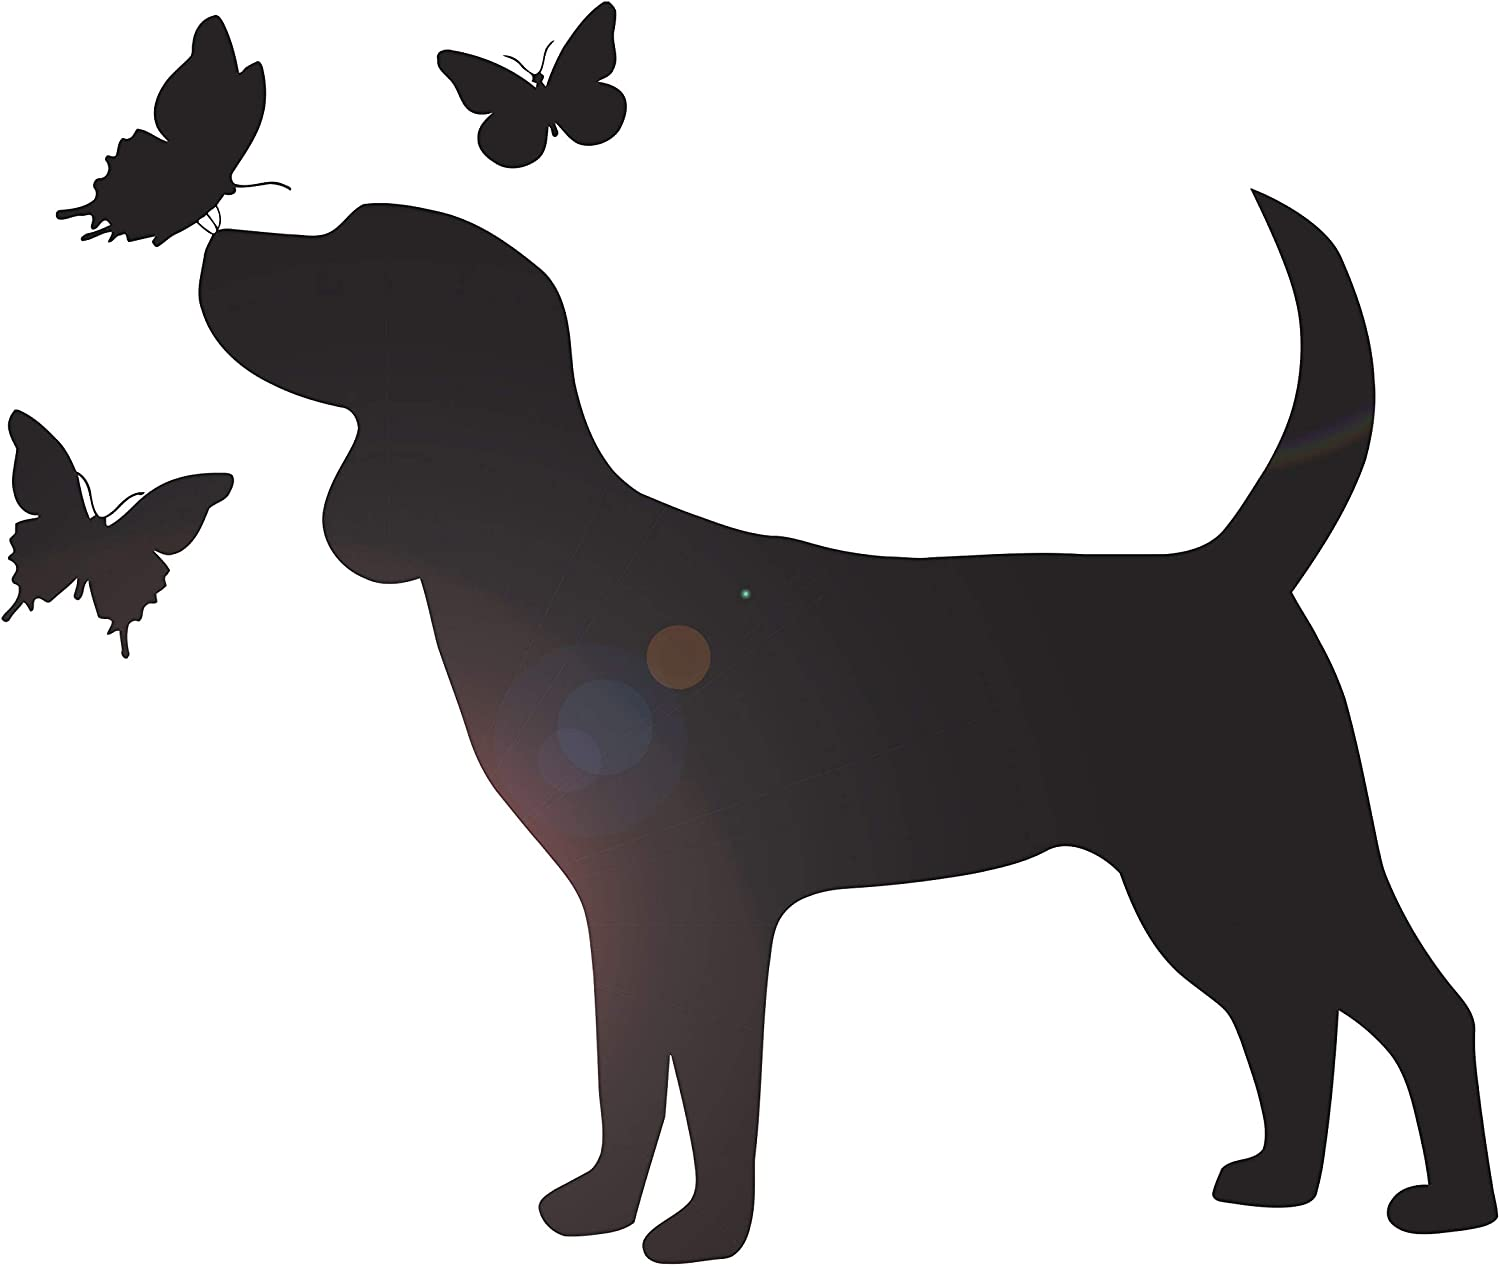 DesignToRefine Vinyl Wall Decal Puppy Dog with Butterflies Silhouette Pet Shop Grooming Stickers Mural Large Decor (ig6275) Black